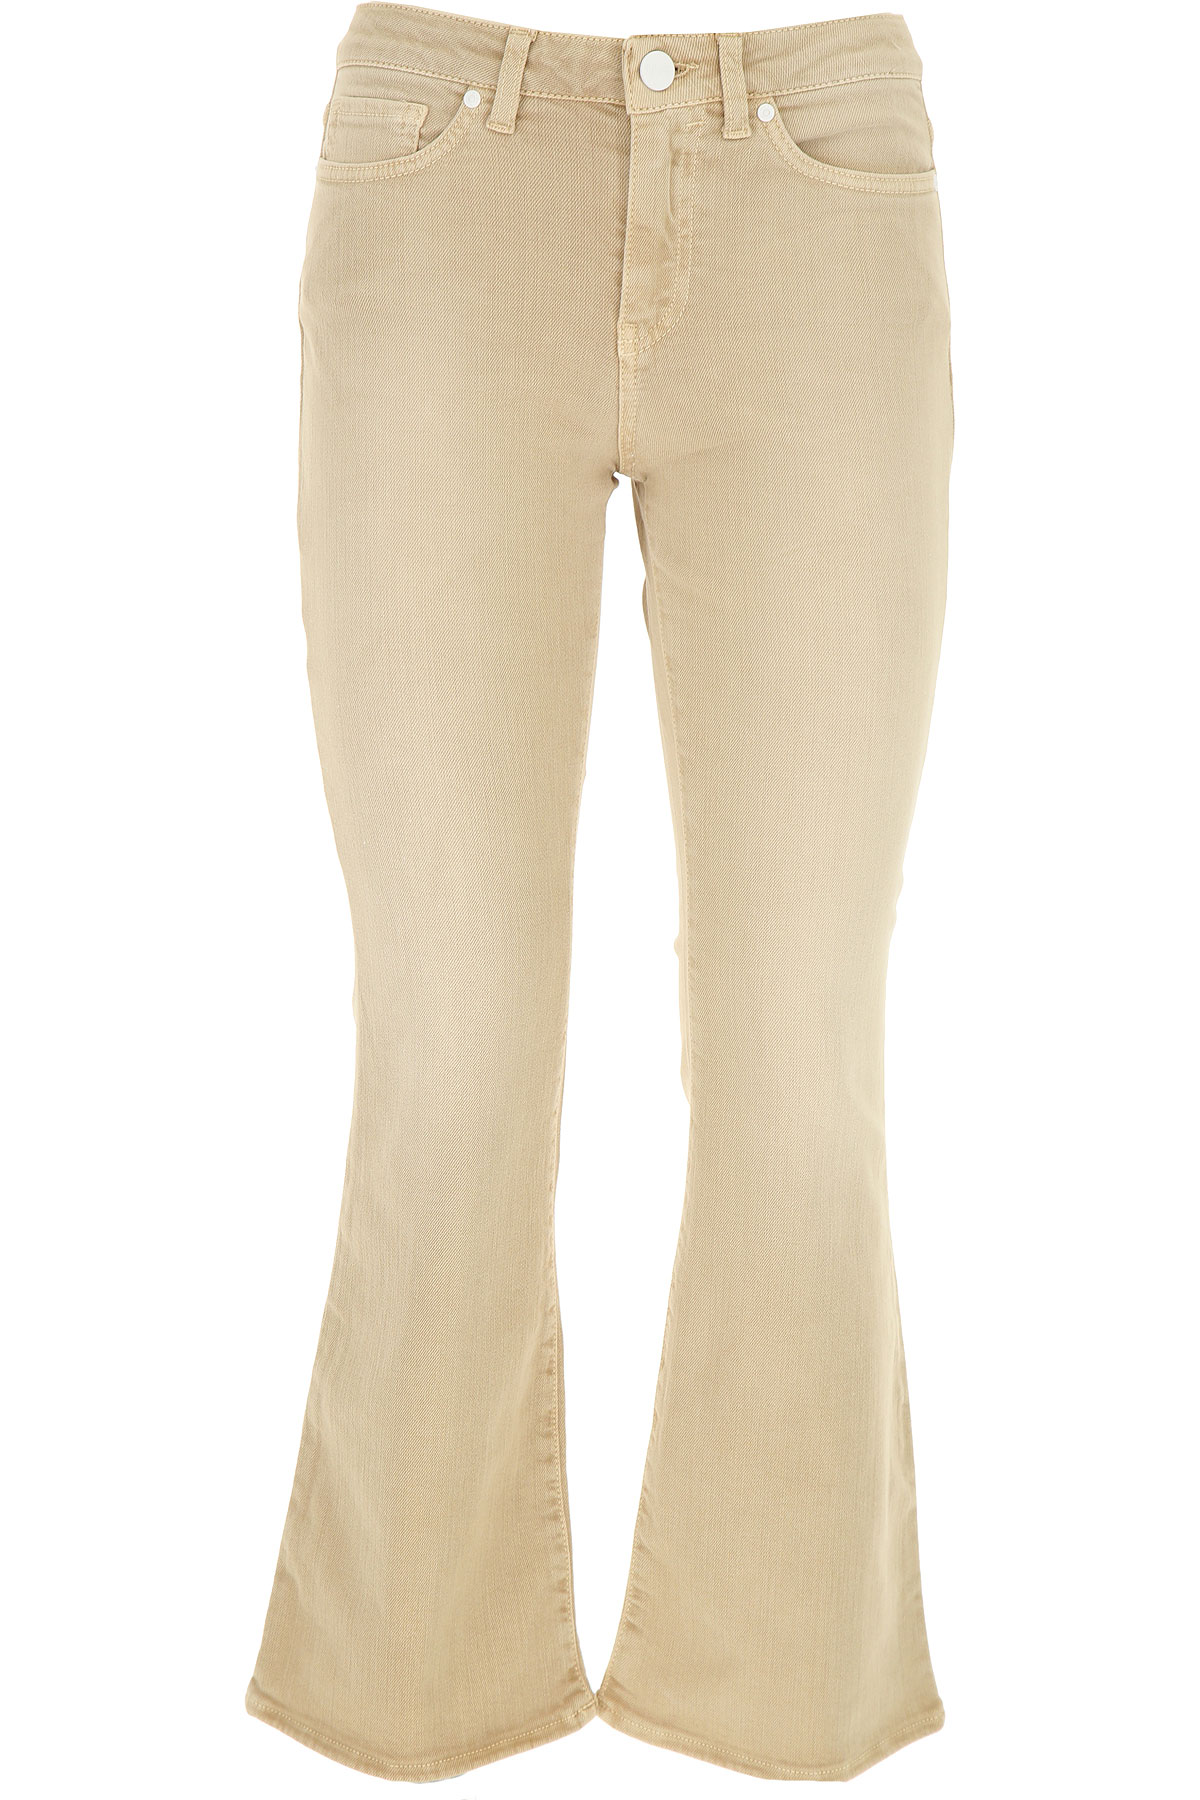 100% authentic c34b5 058a8 Pinko Jeans, Beige, Cotton, 2019, 27 29 > Clothing > Women Jeans. | Coupon  Code Available